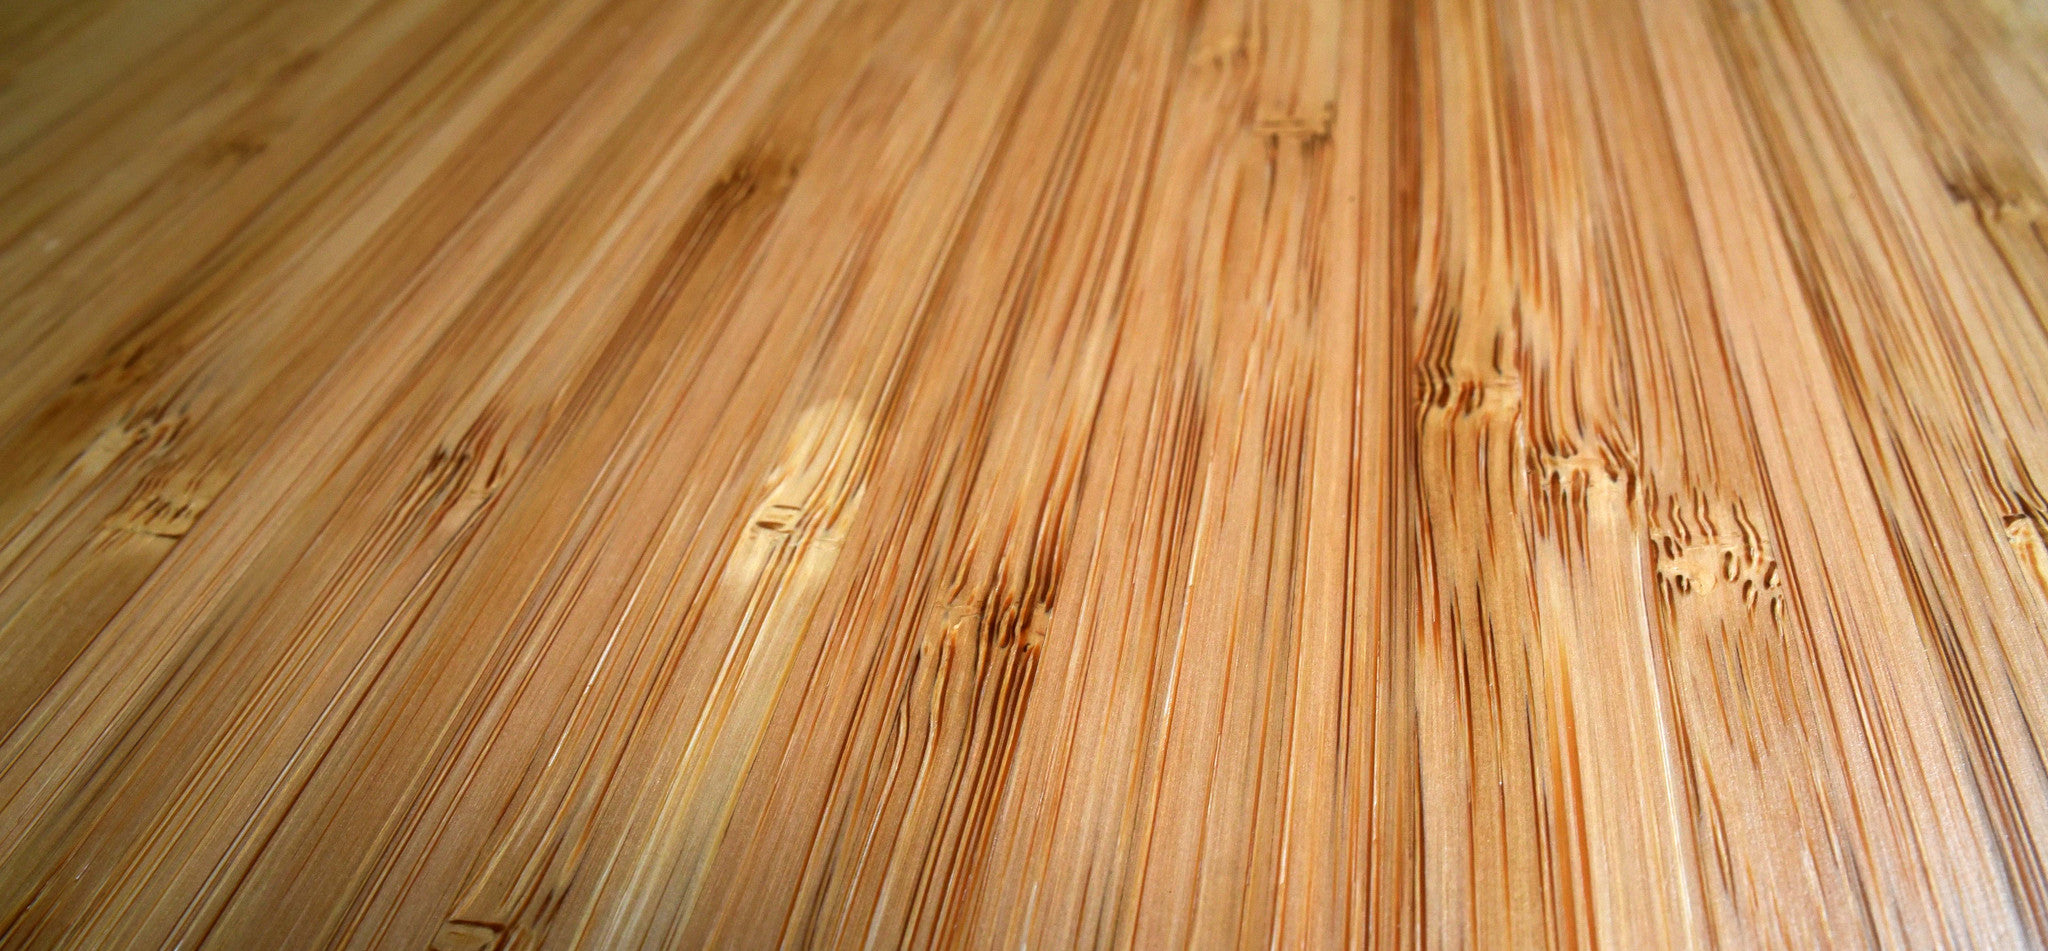 Grassracks Gorgeous Bamboo Grain